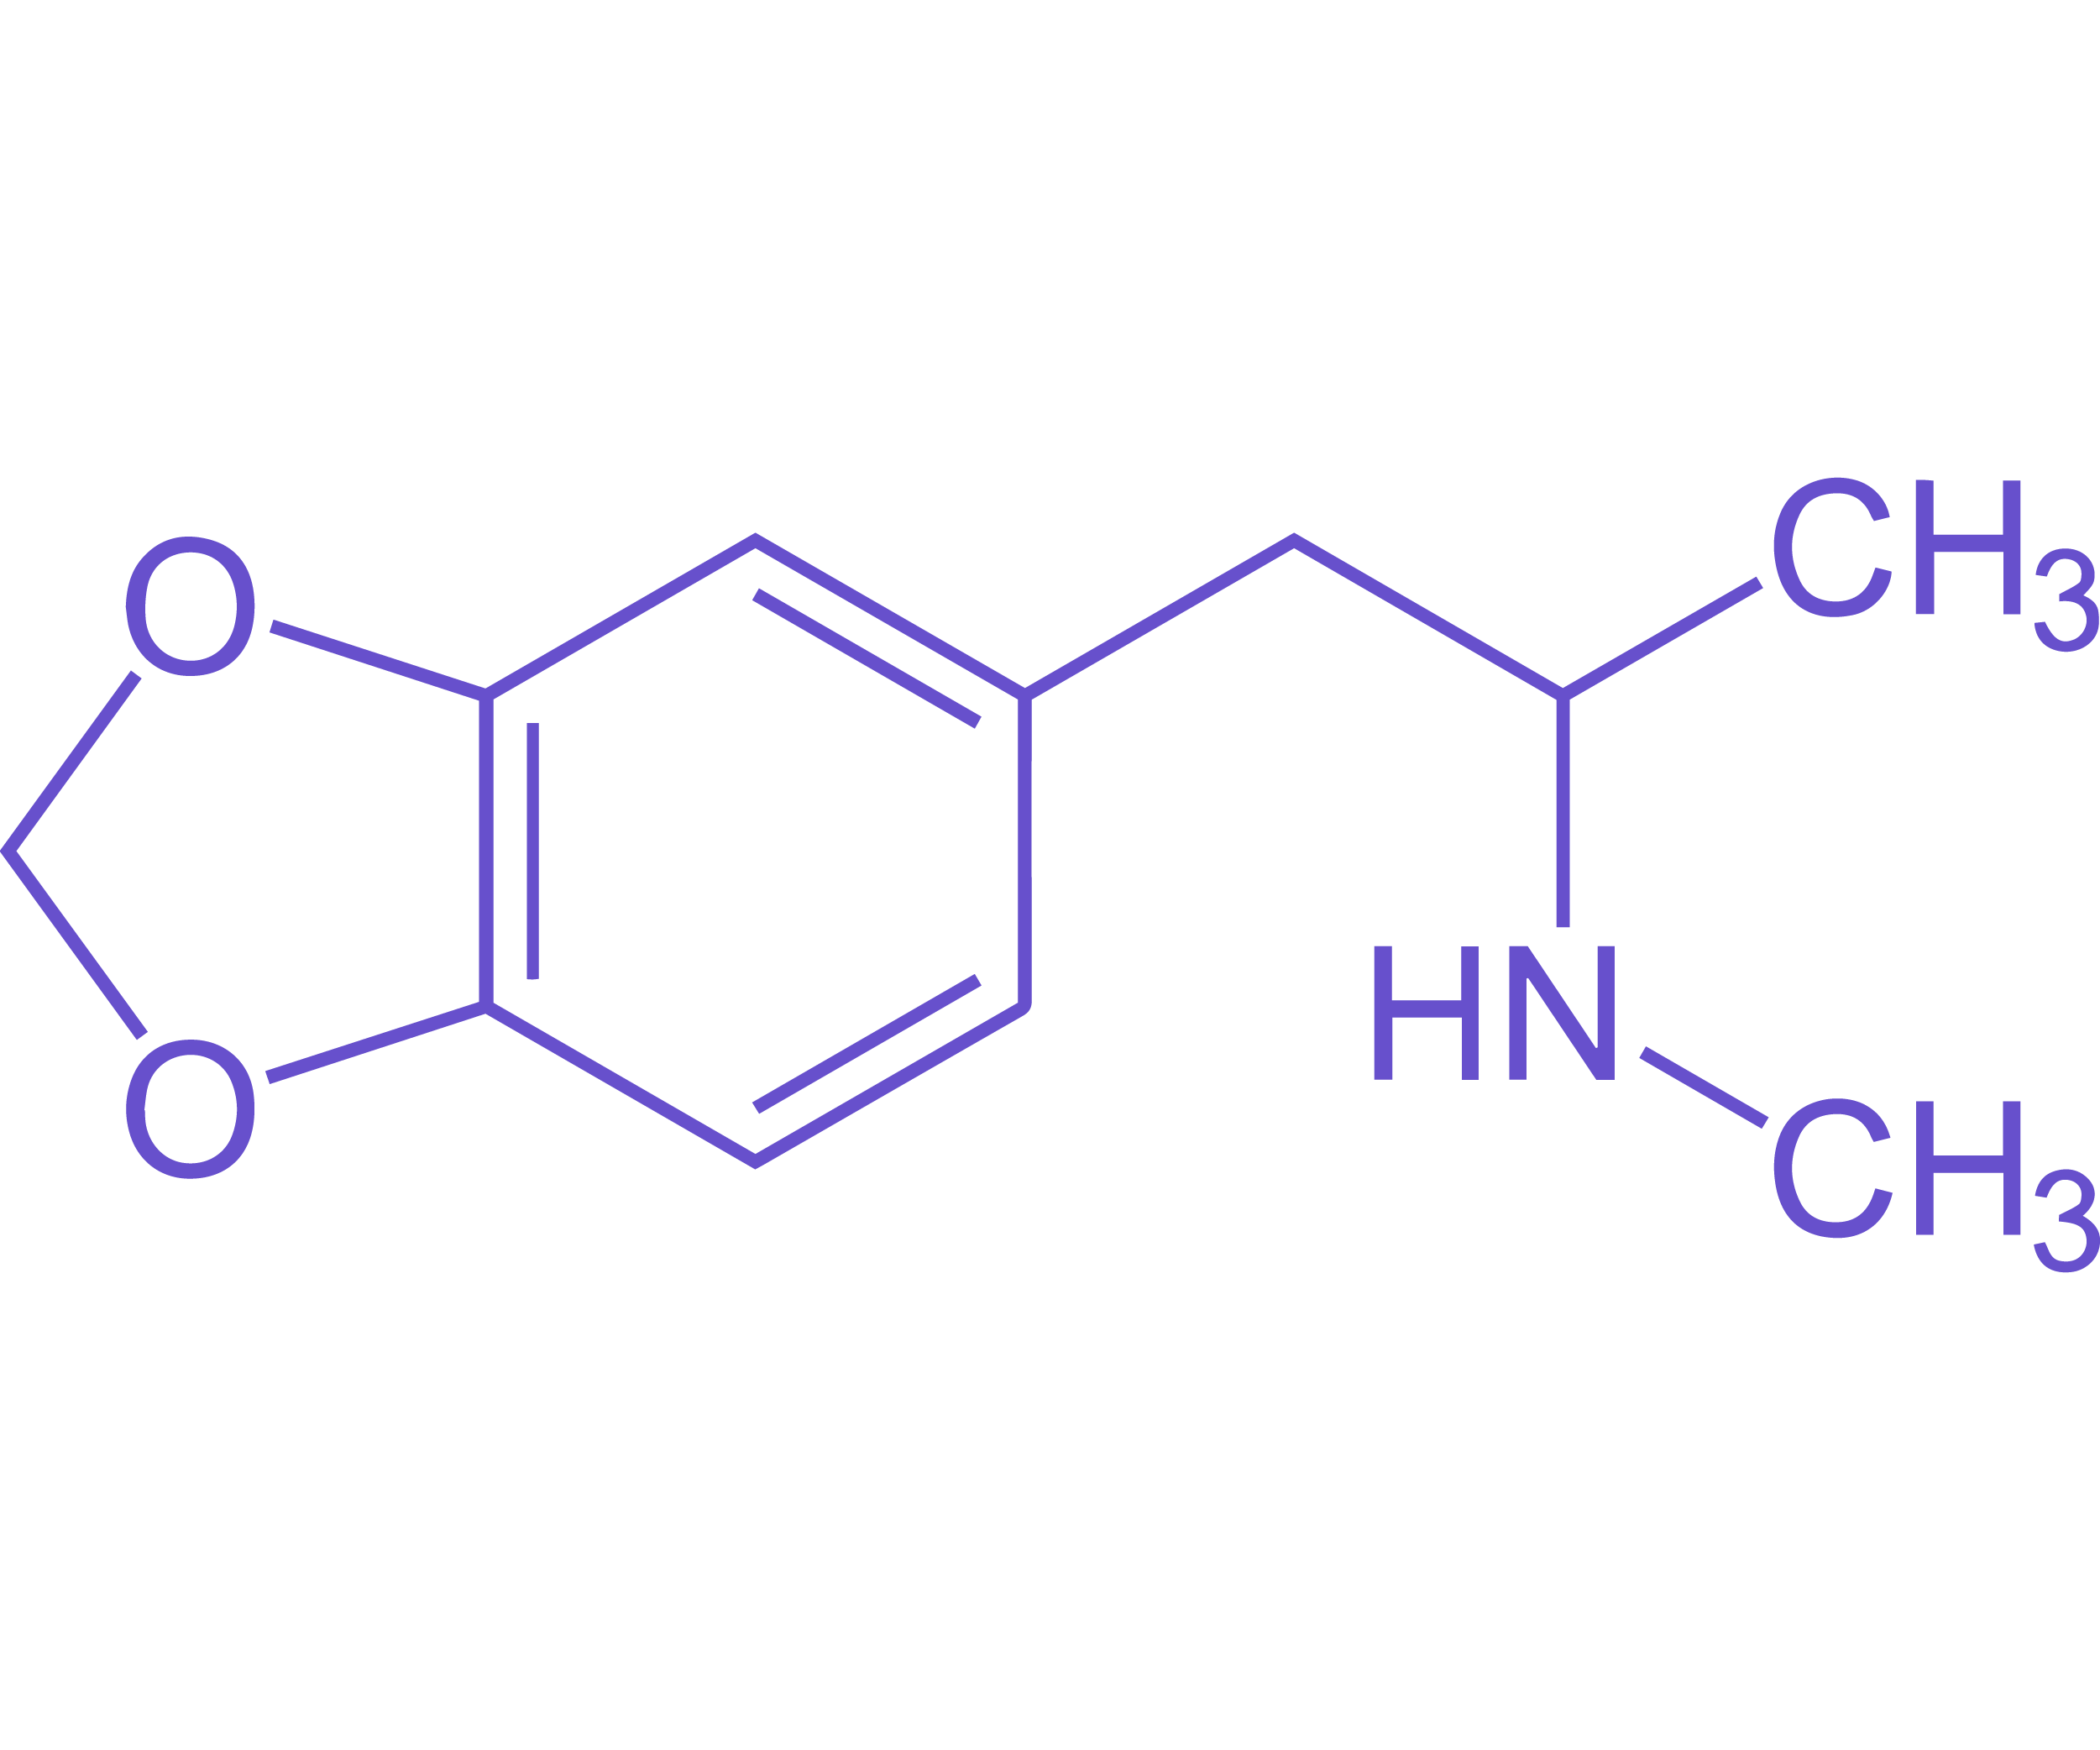 MDMA is a synthetic stimulant drug of the central nervous system (CNS) that alters mood and perception and is derived from amphetamine.